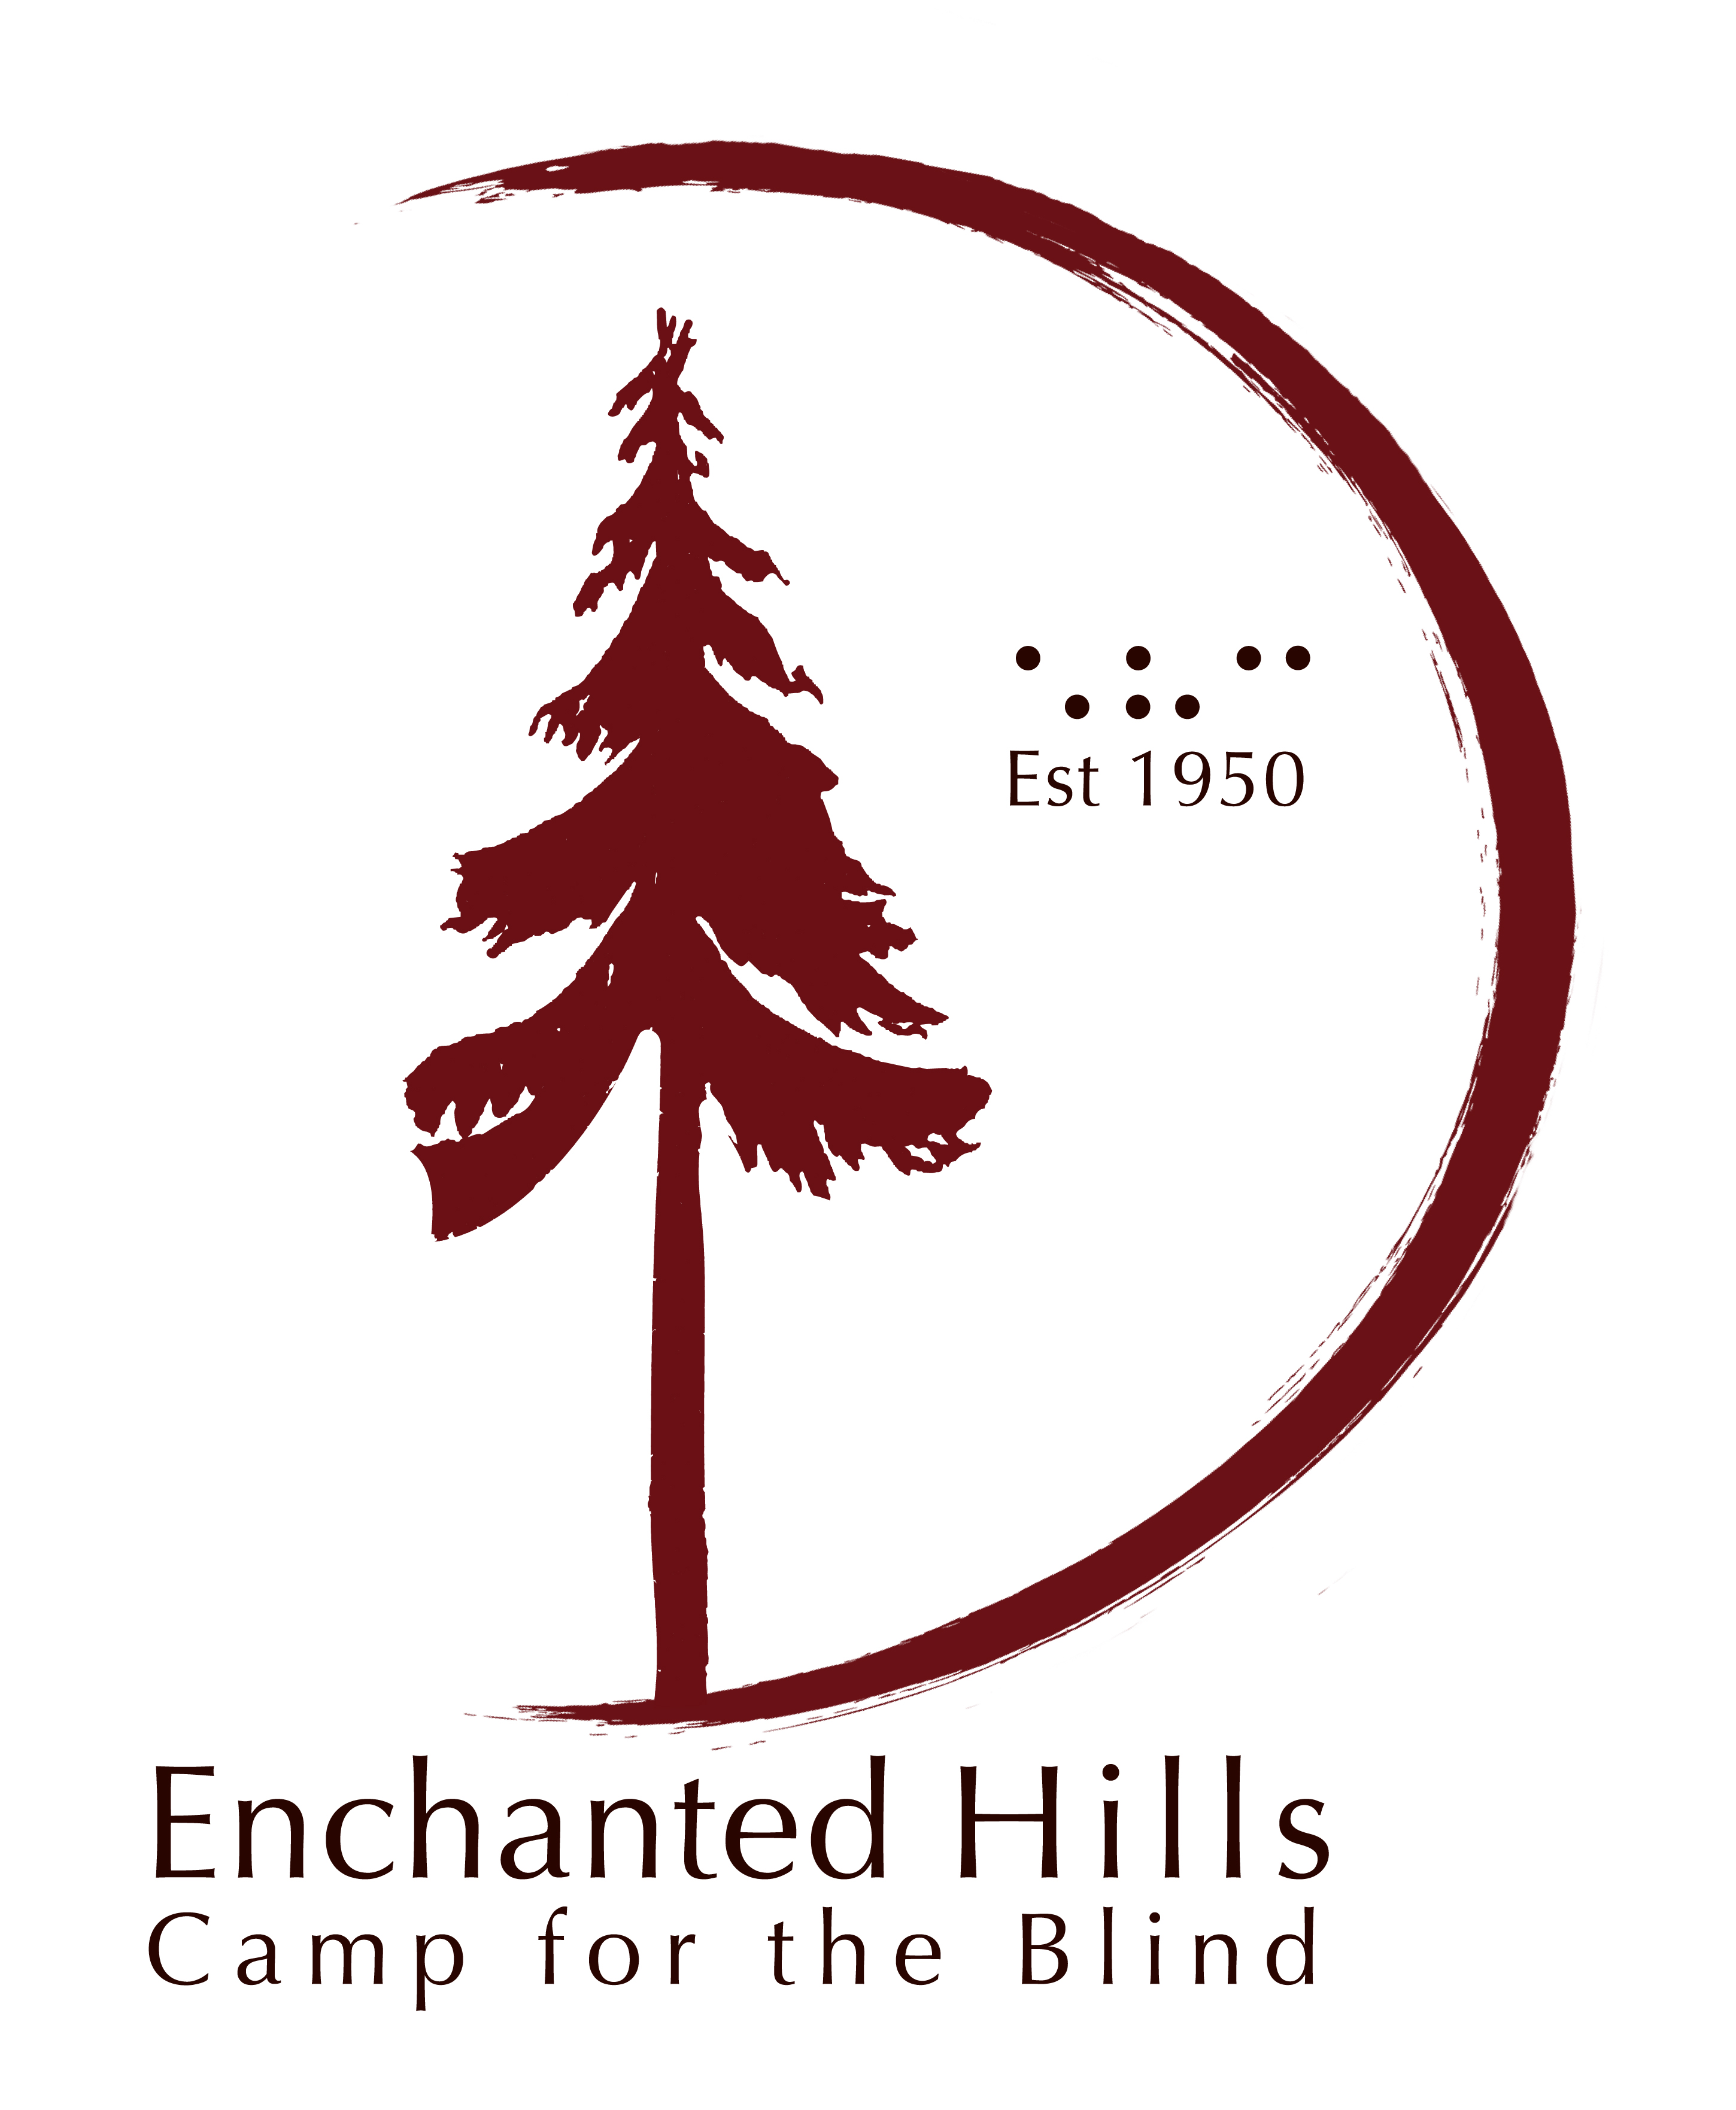 Enchanted Hills Camp for the Blind